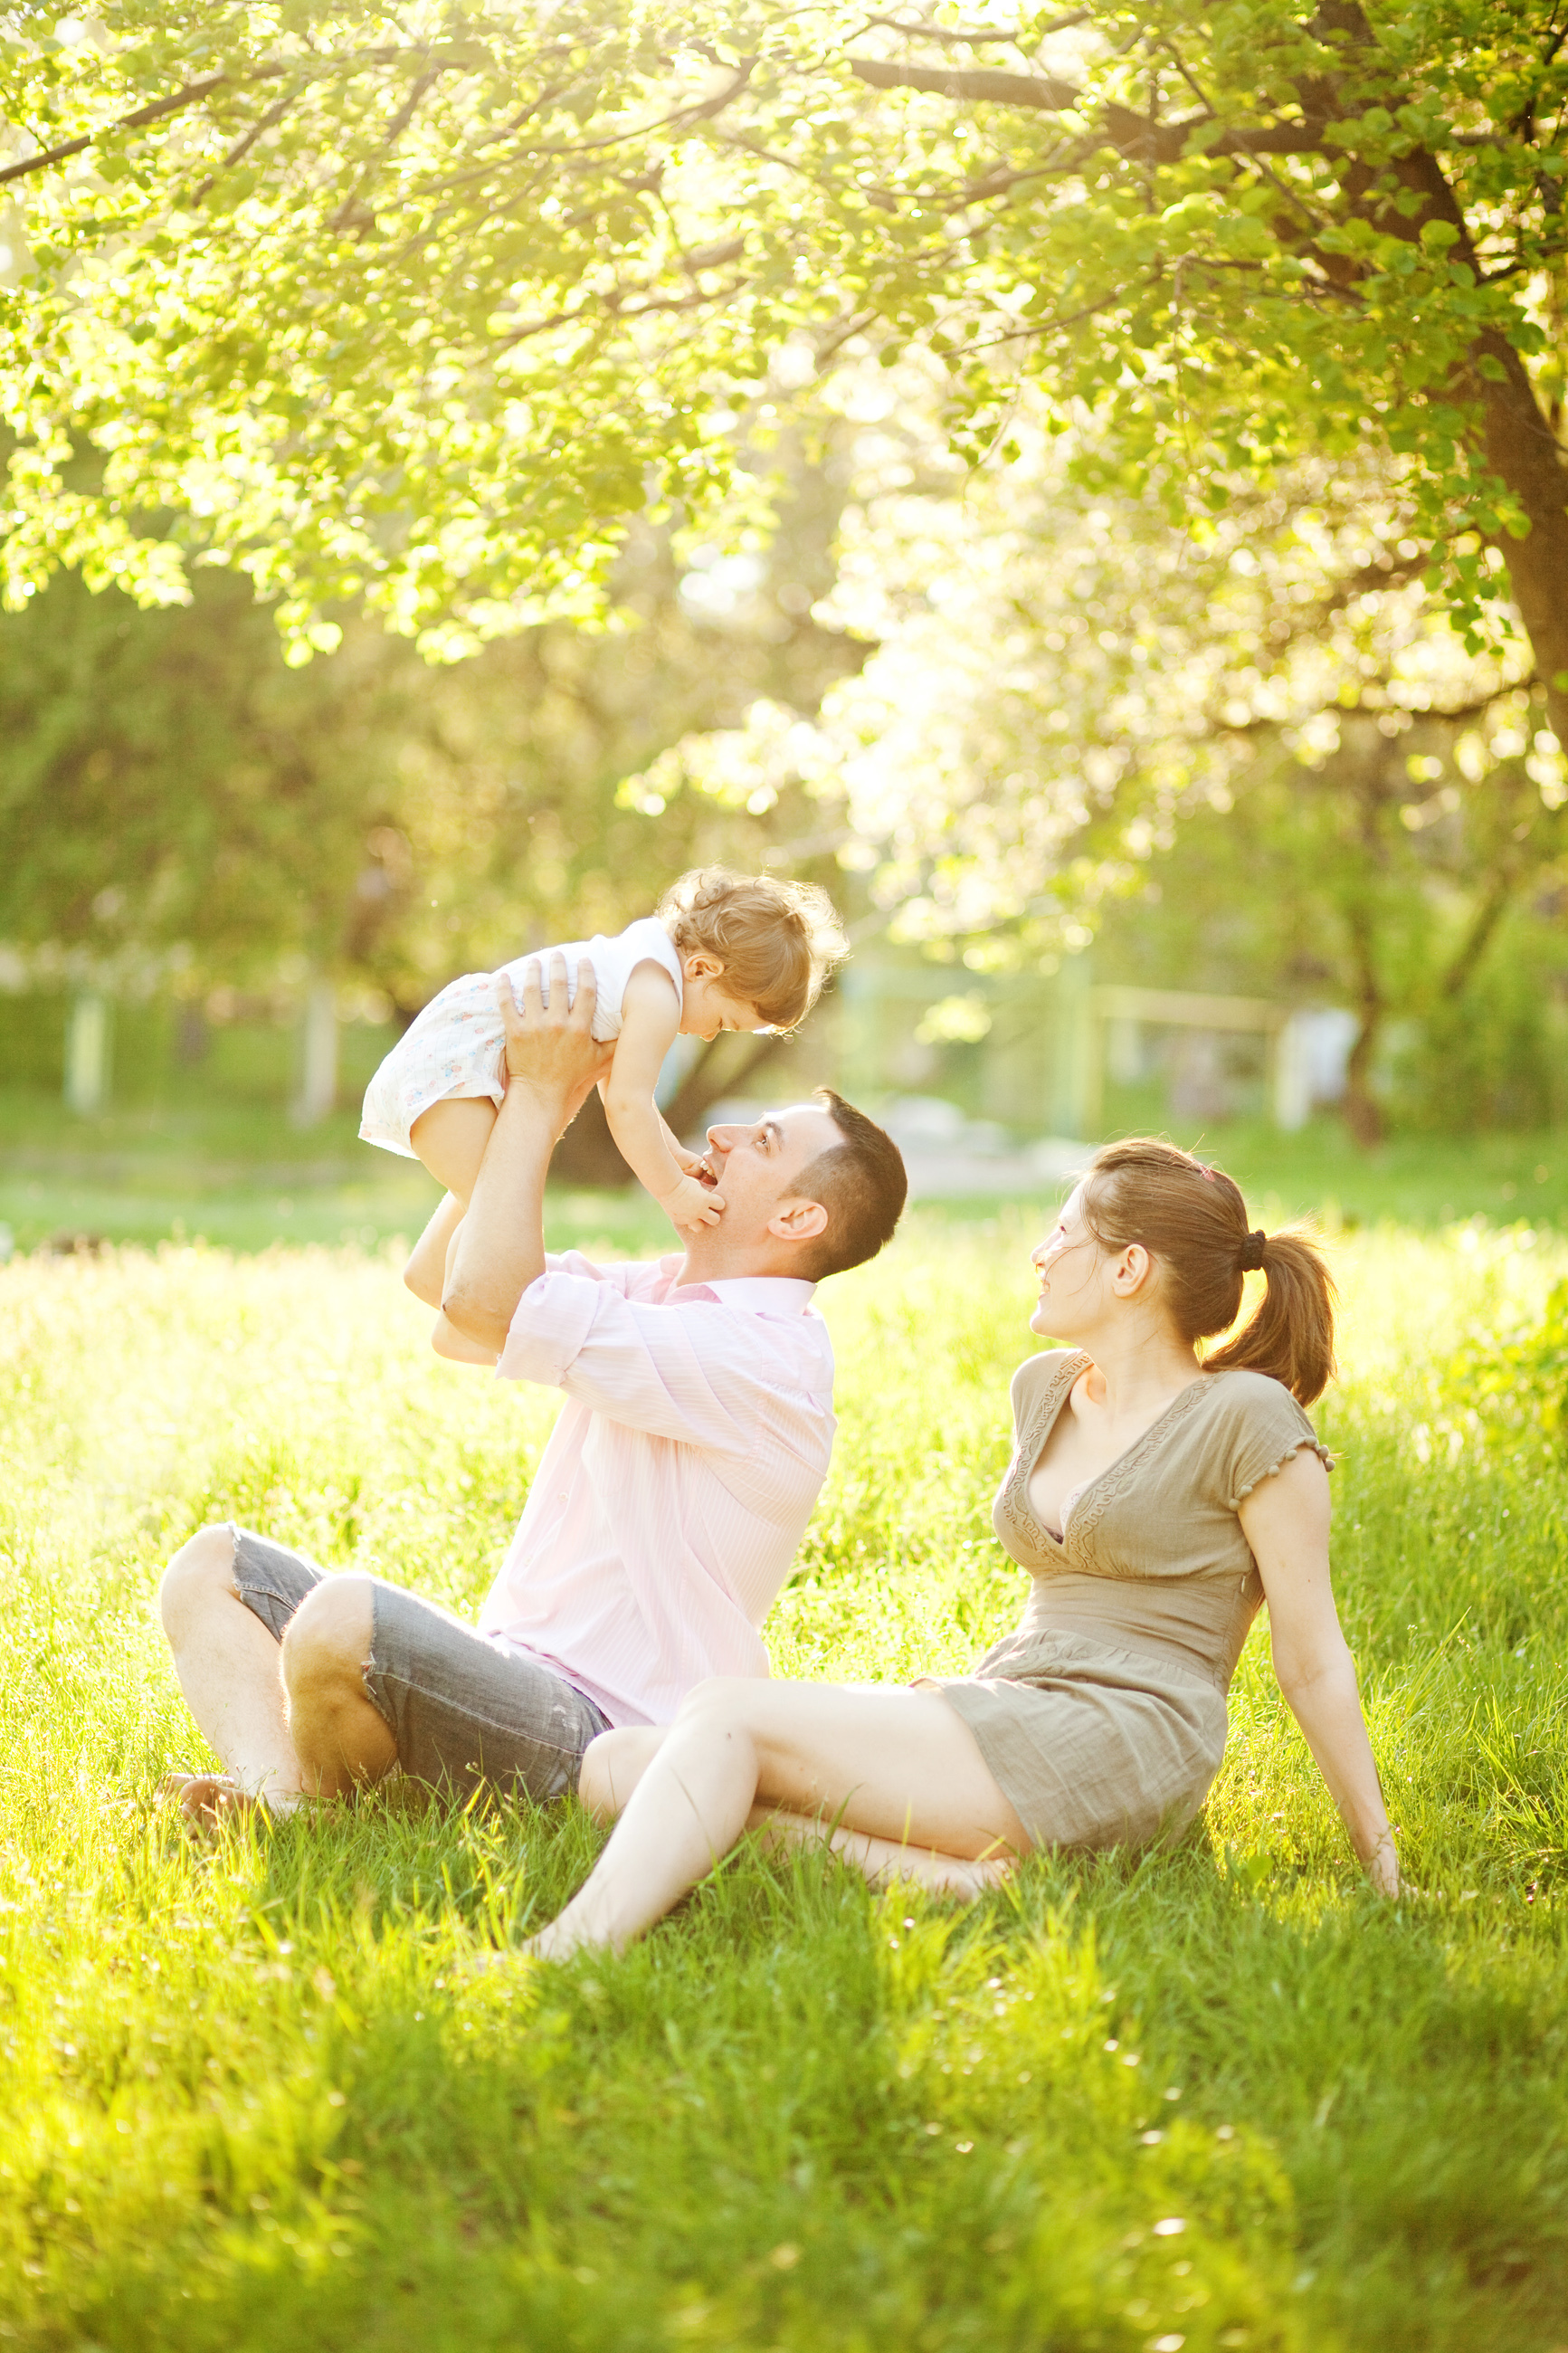 Why you need whole life insurance